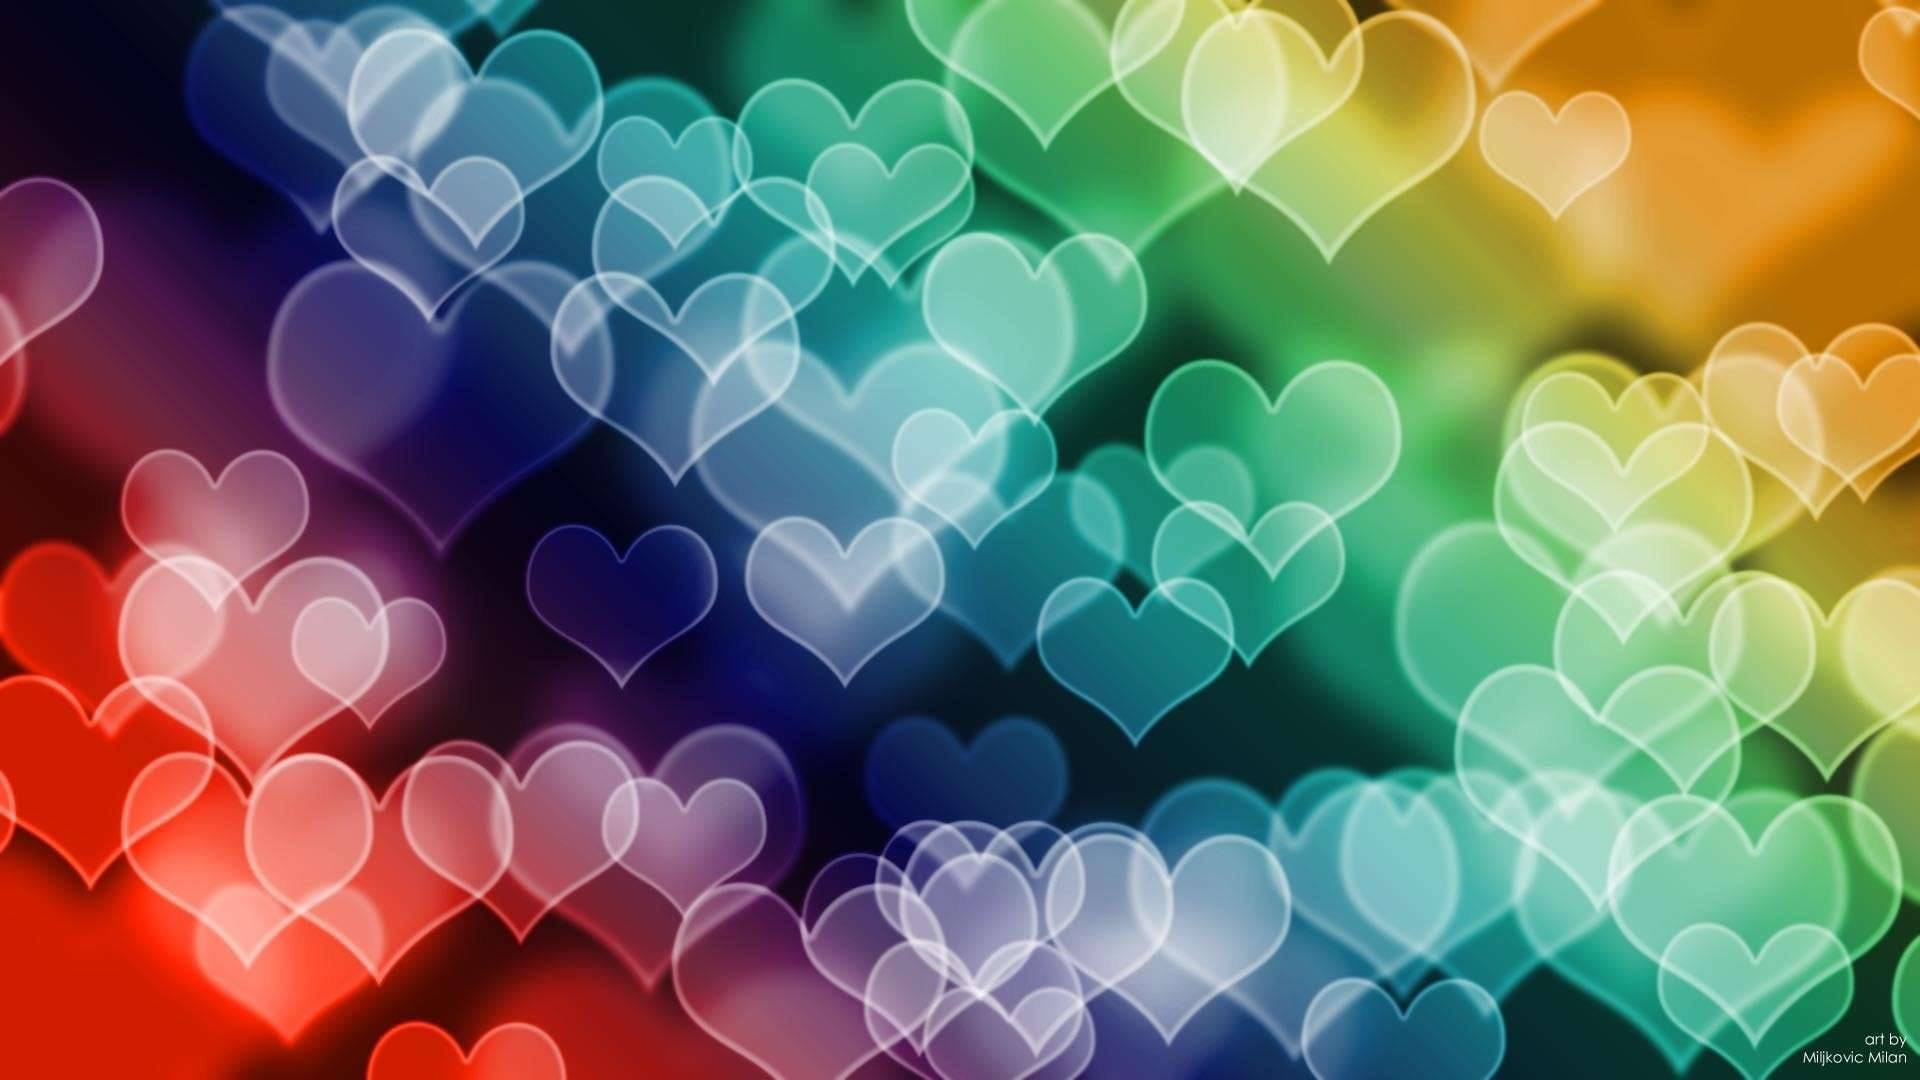 Colored Hearts HD Wallpaper in Full HD from the Valentine's Day category.